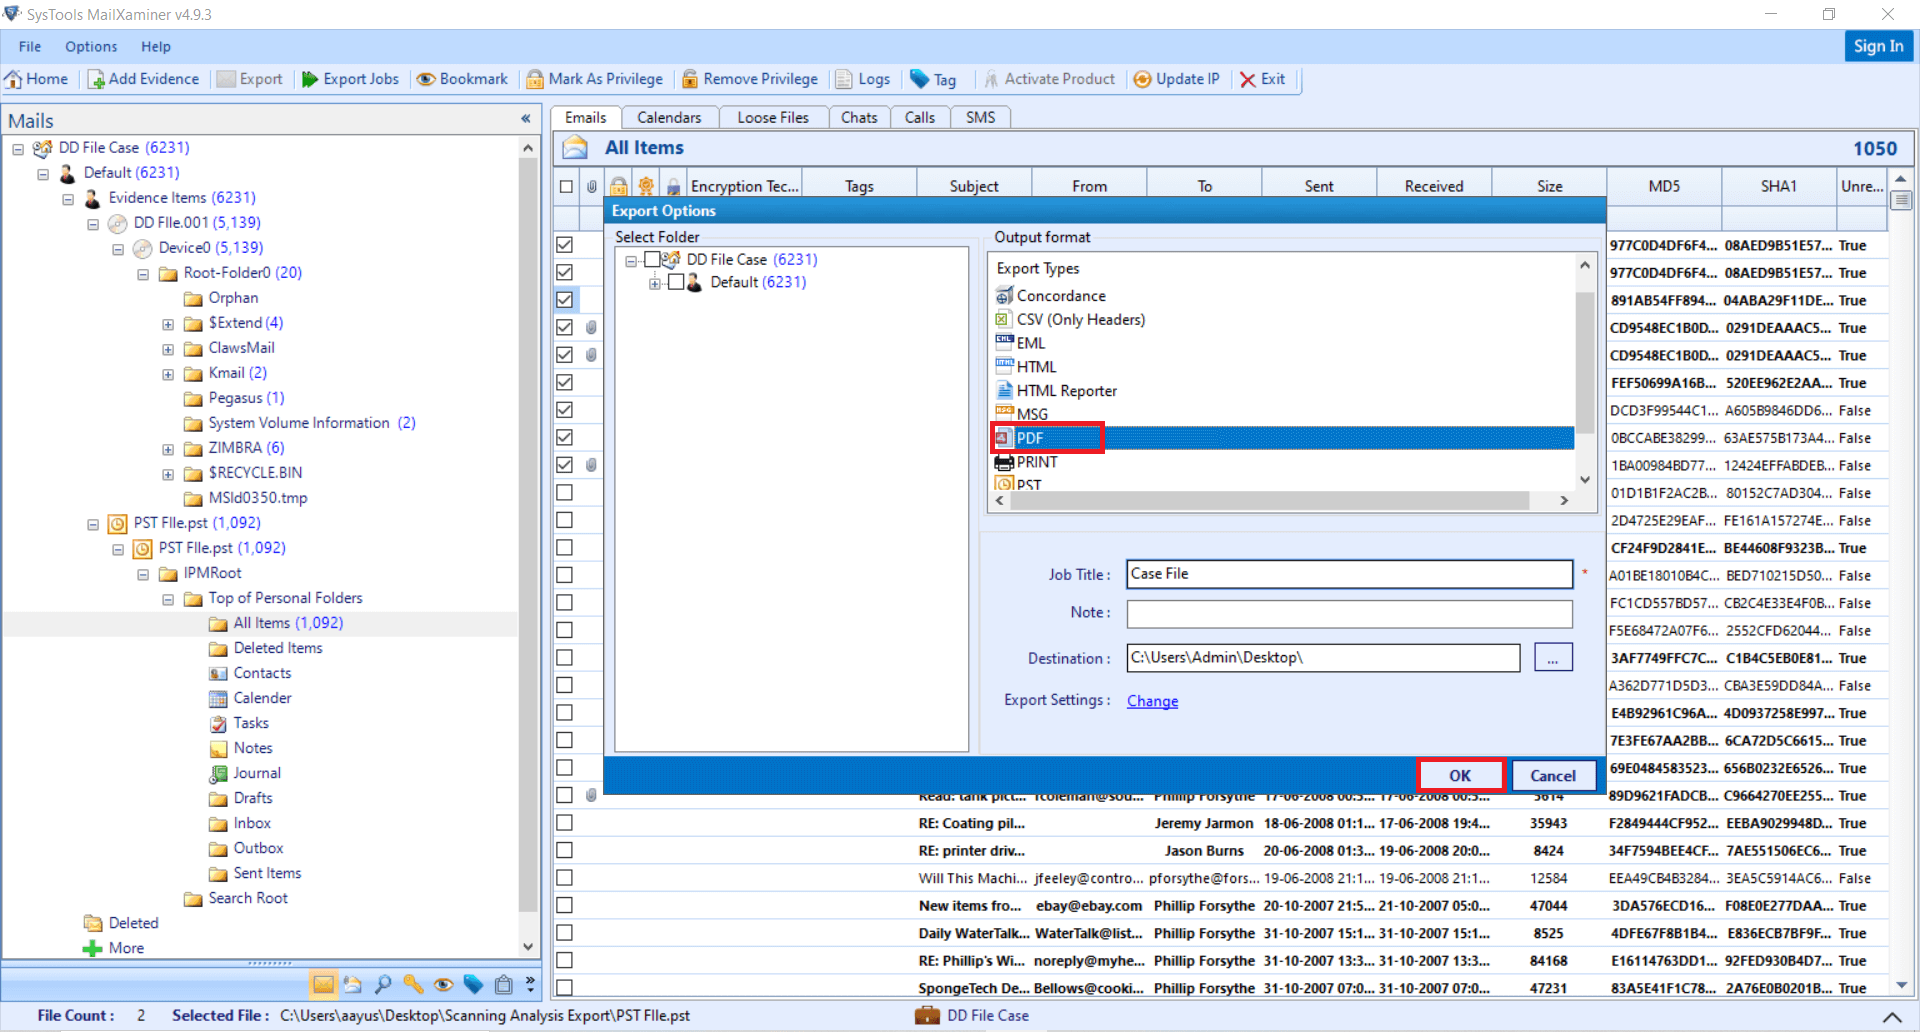 Export DD File Forensics Artifacts